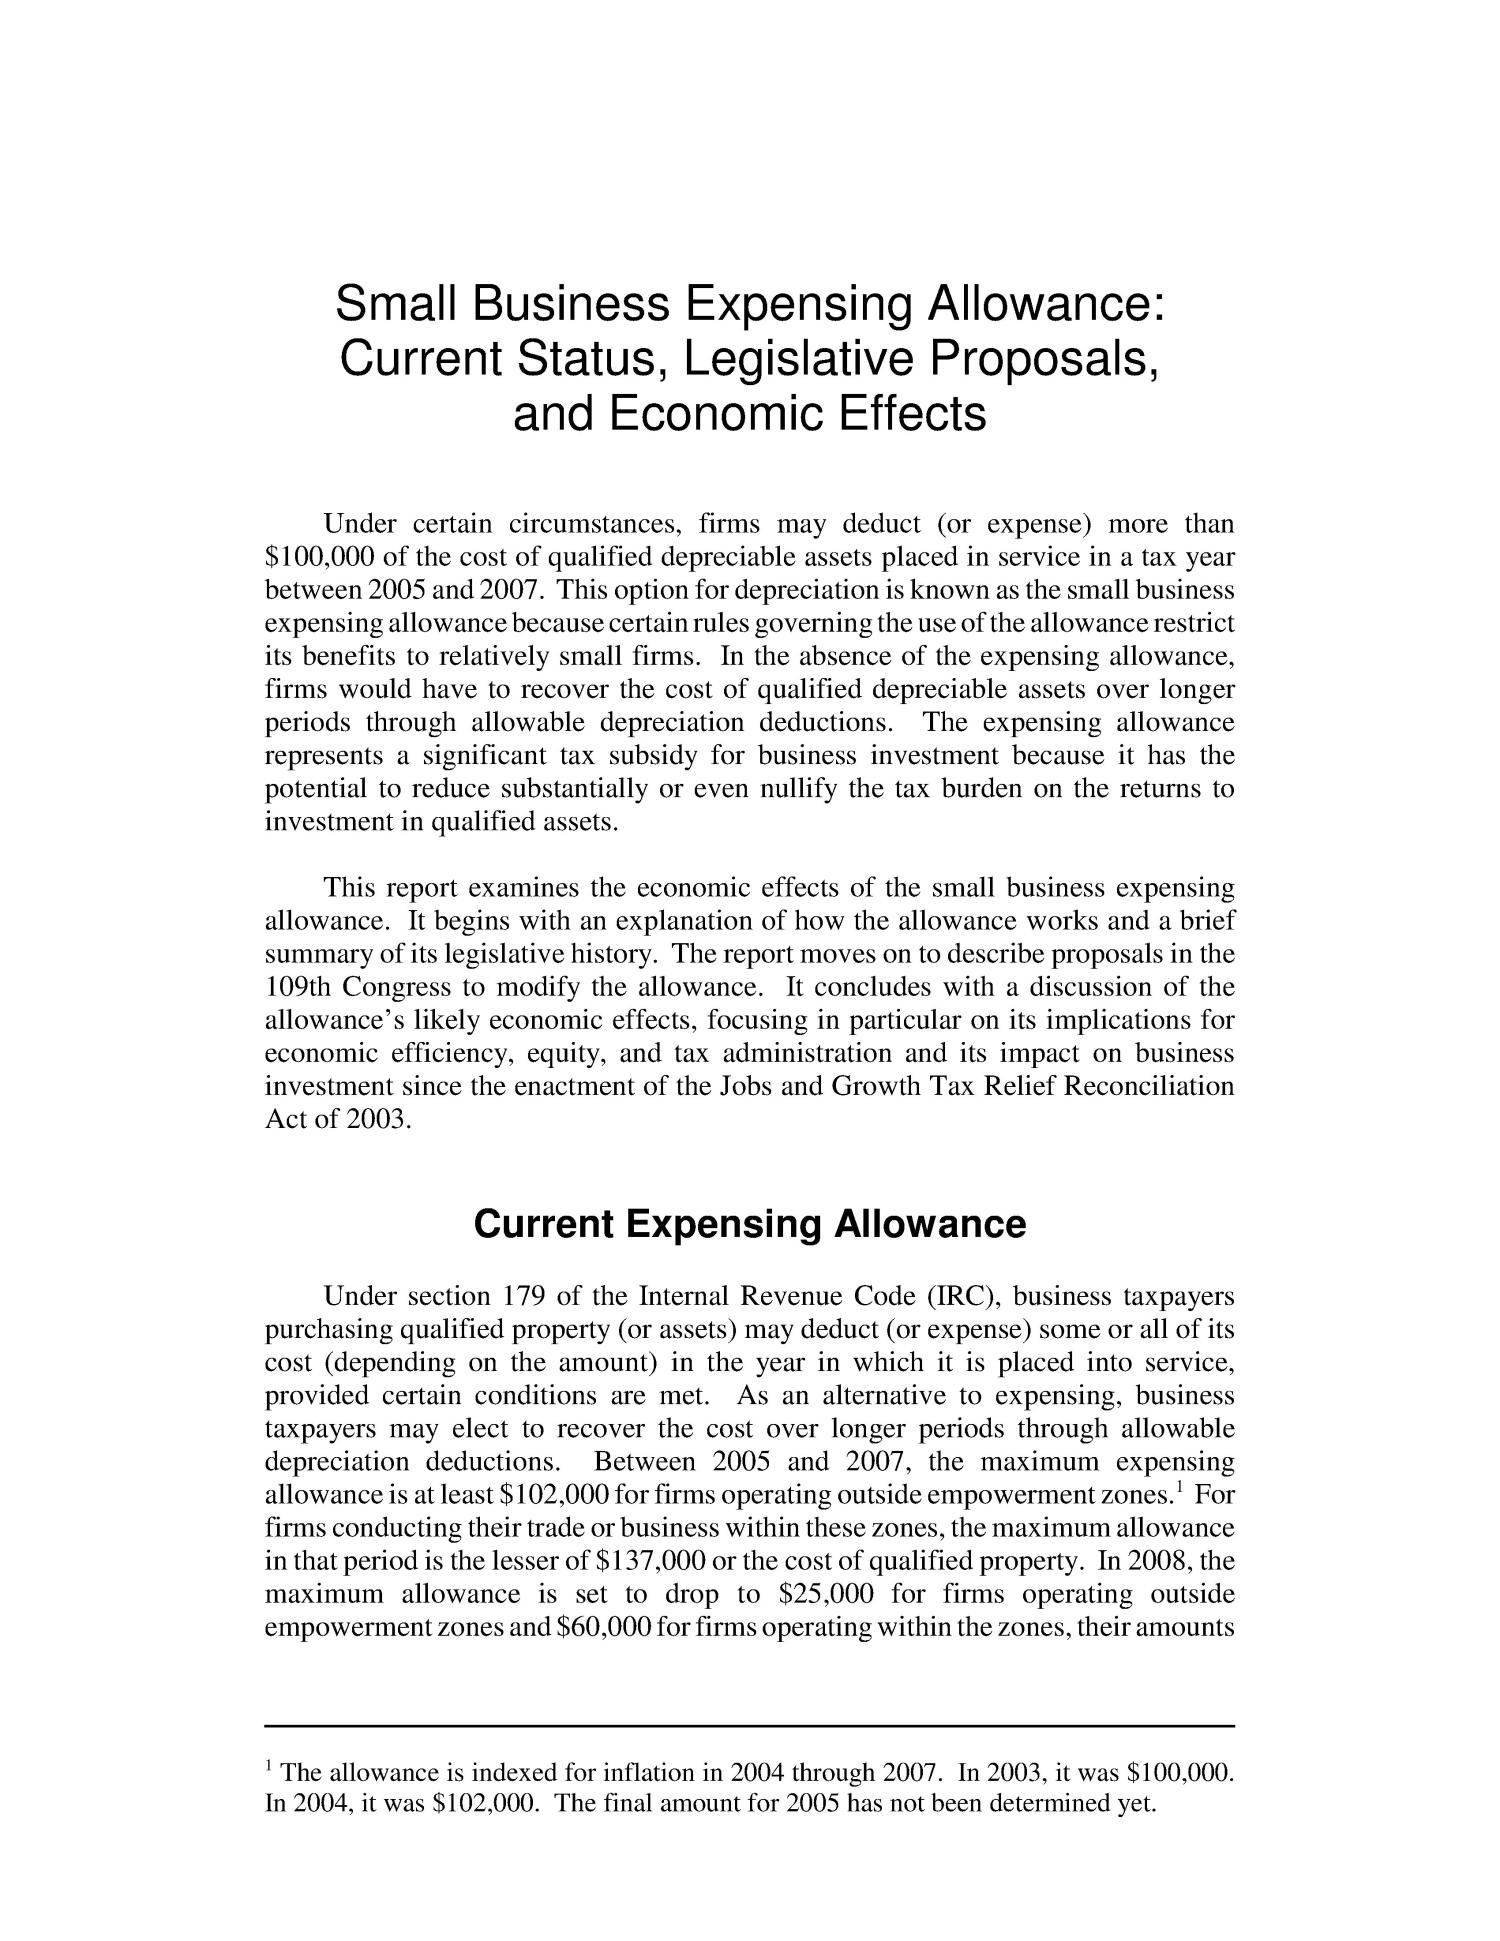 Small Business Expensing Allowance: Current Status, Legislative Proposals, and Economic Effects                                                                                                      [Sequence #]: 4 of 14